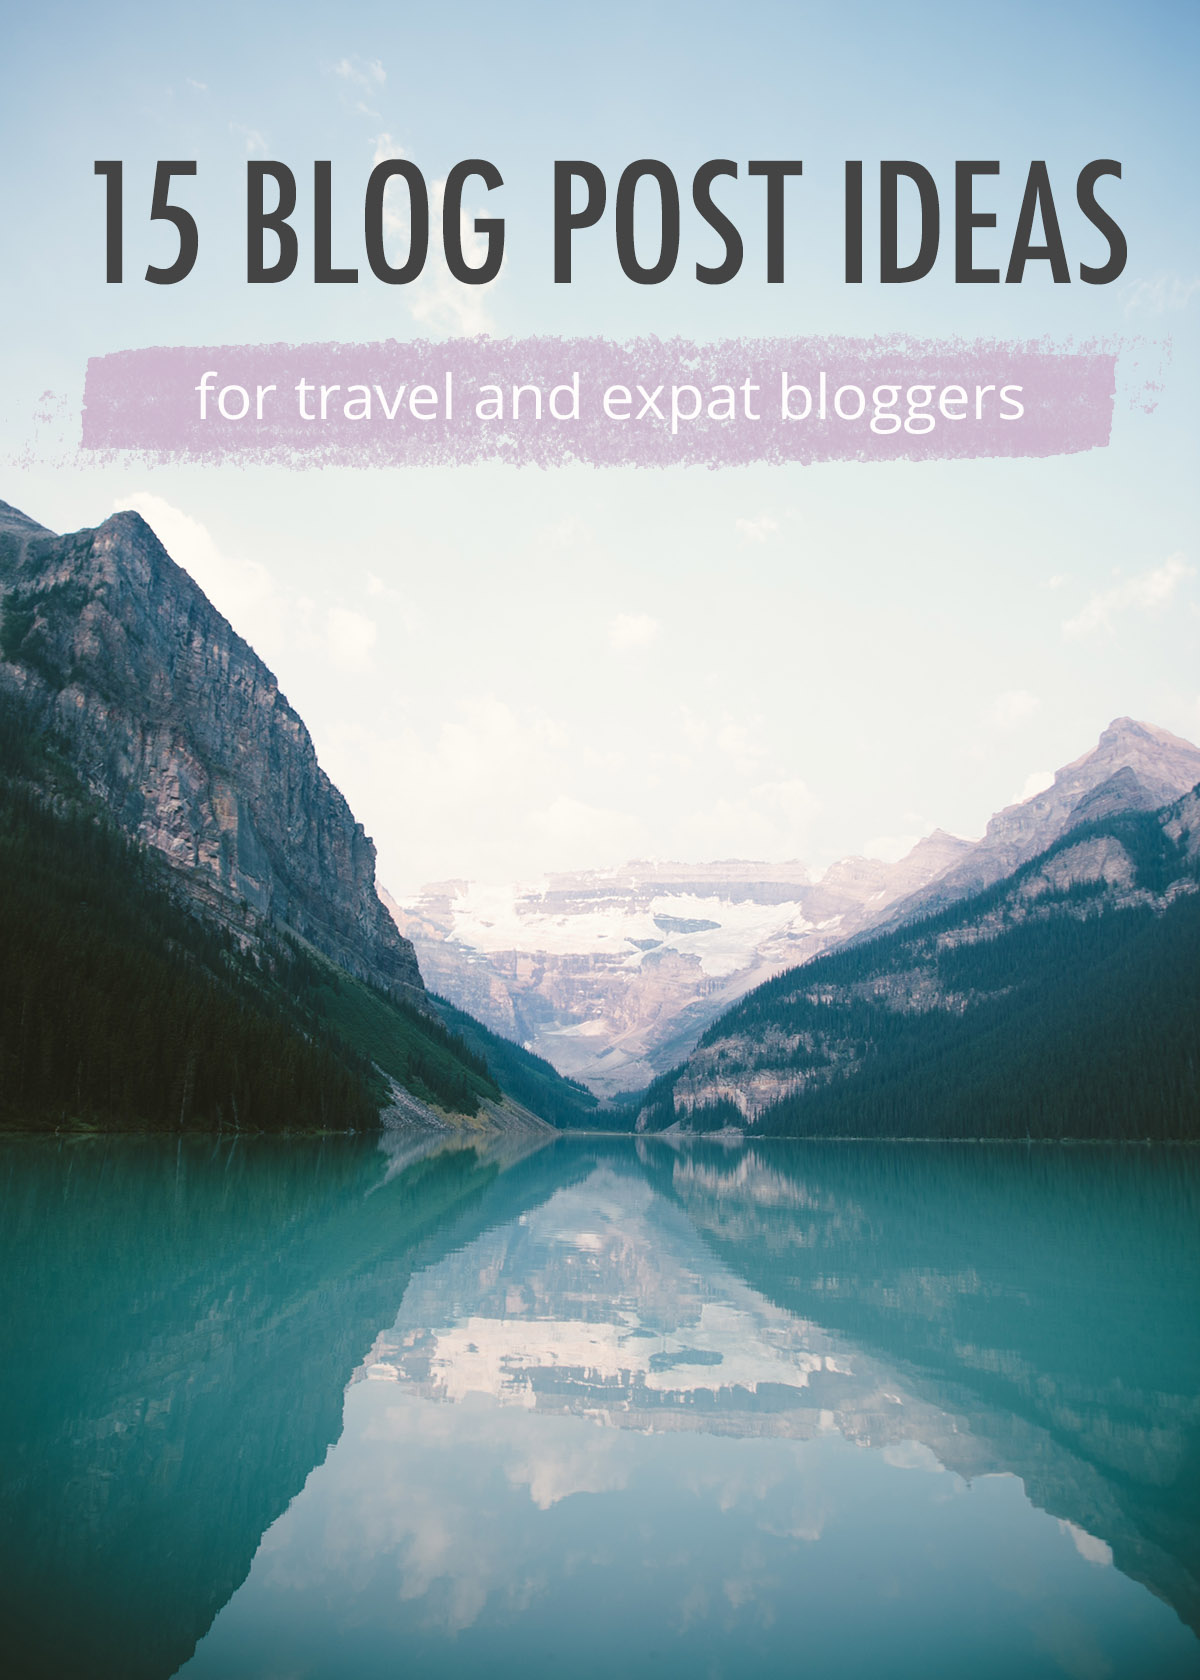 15 Blog post ideas for travel bloggers